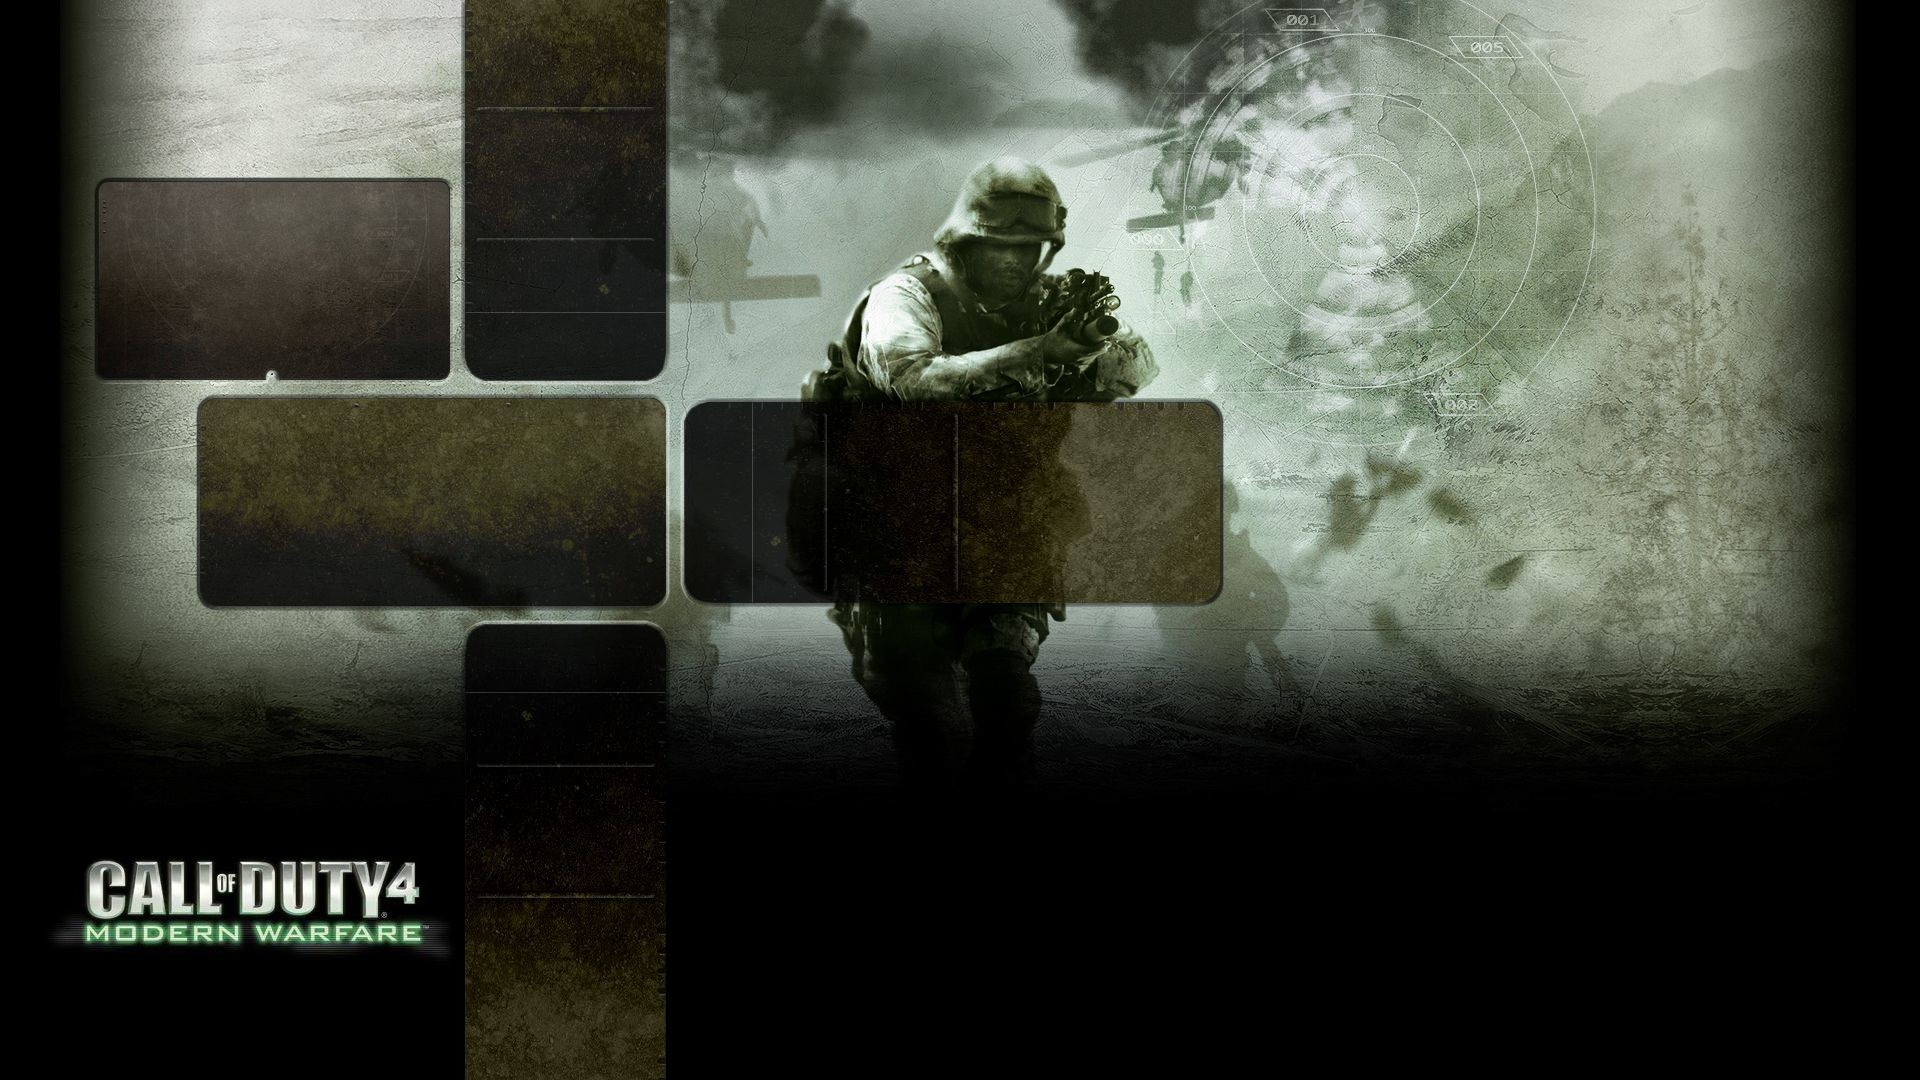 Ps3 HD Game Wallpapers